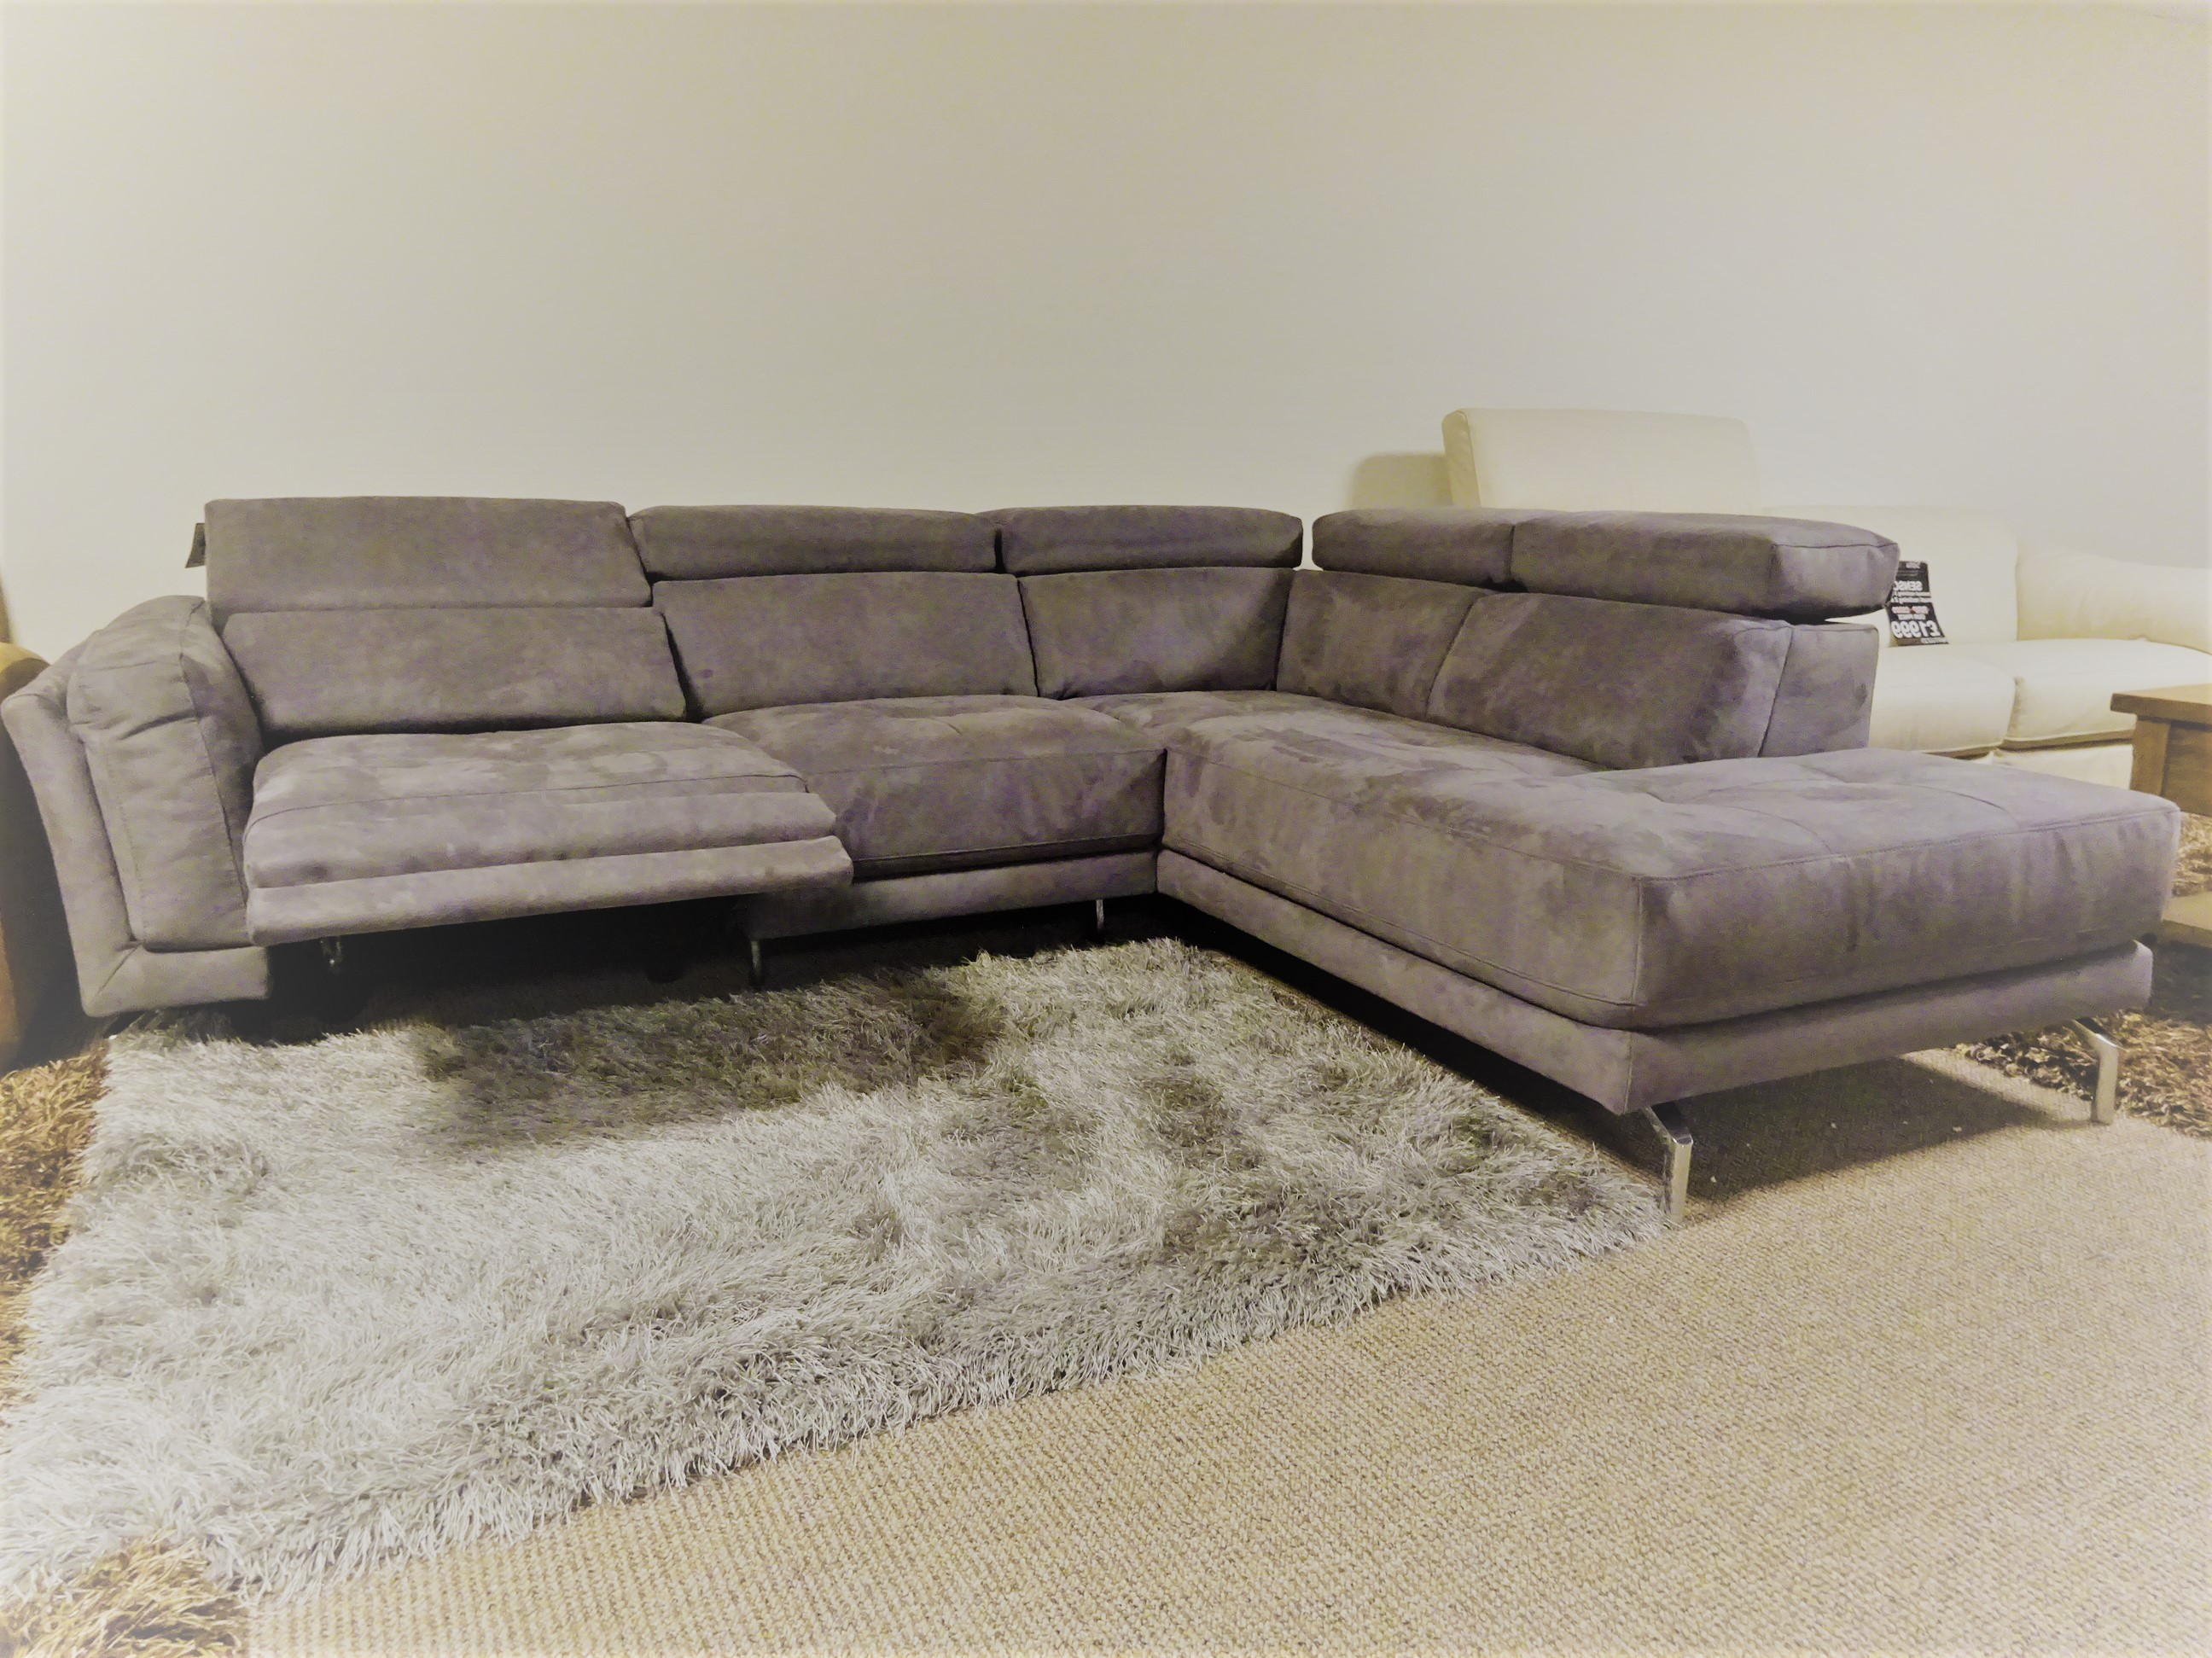 electric recliner leather sofas uk living rooms with dark grey natuzzi editions fabric reclining r h sofa